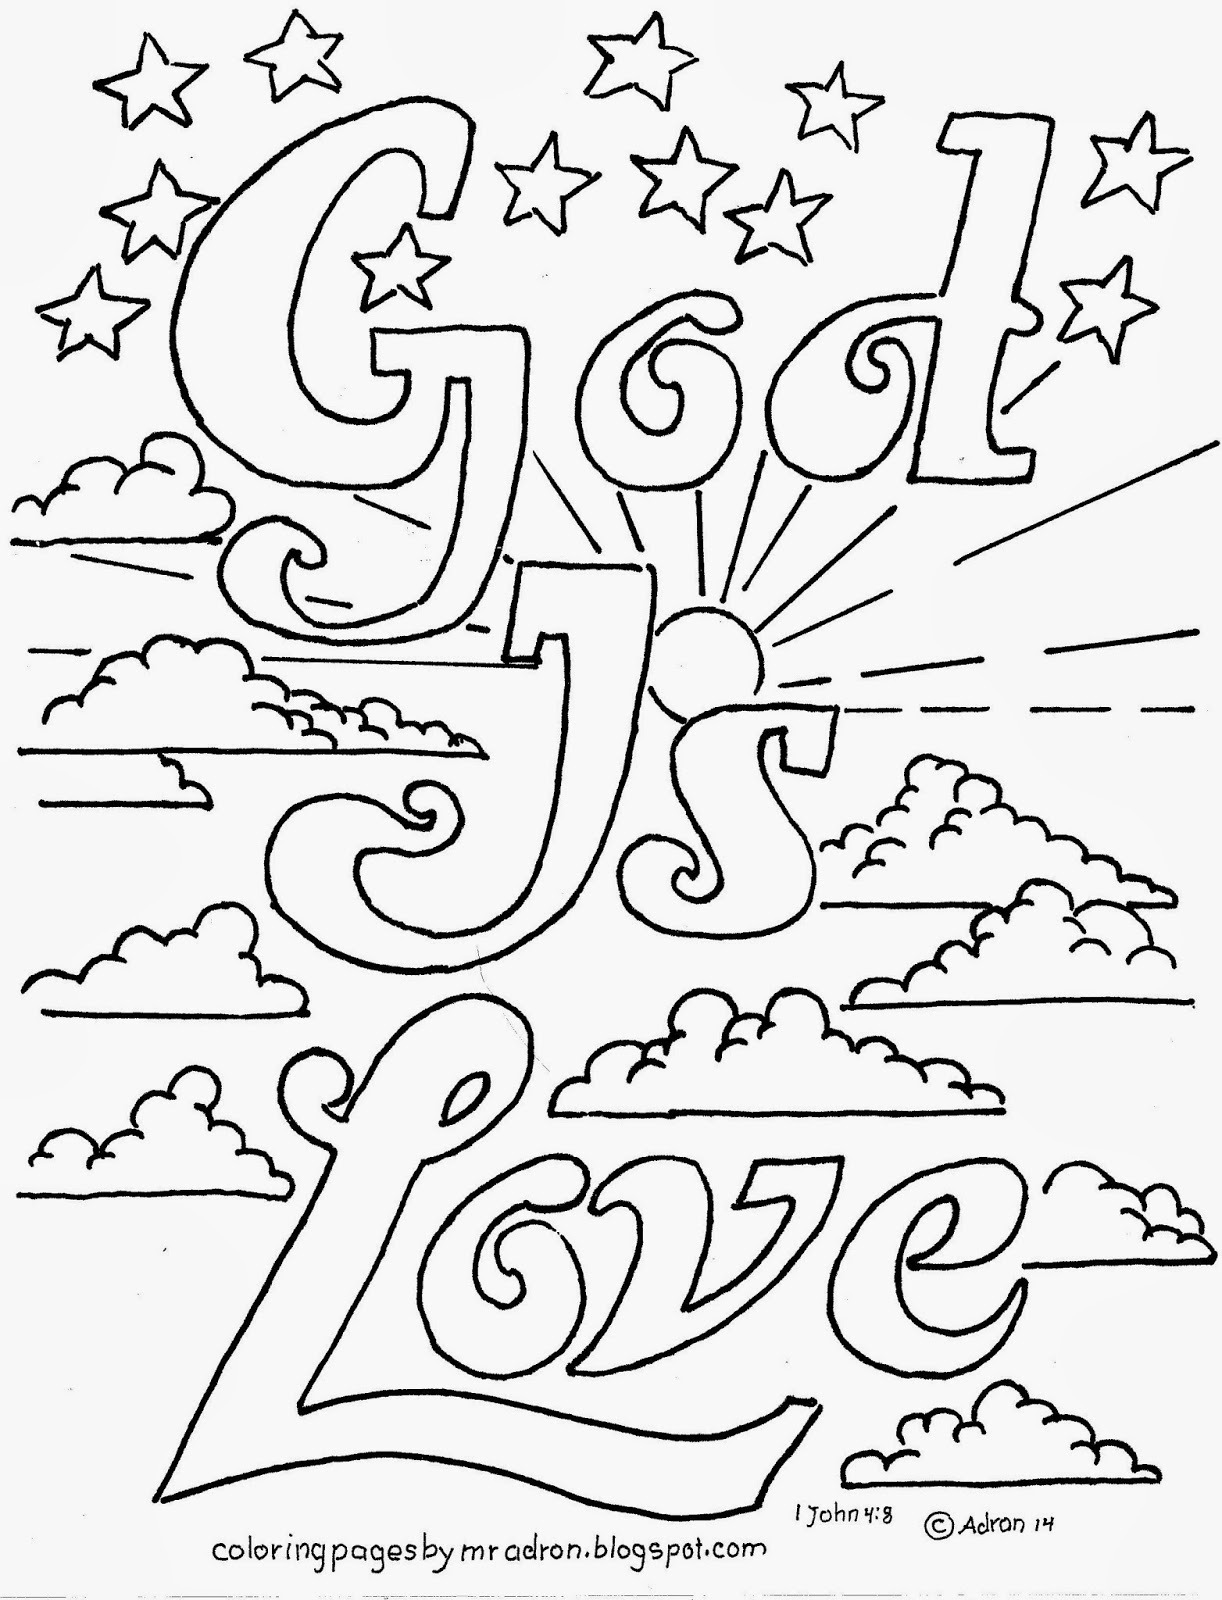 Coloring pages for john 9 - God Is Love 1 John 4 8 Coloring Page